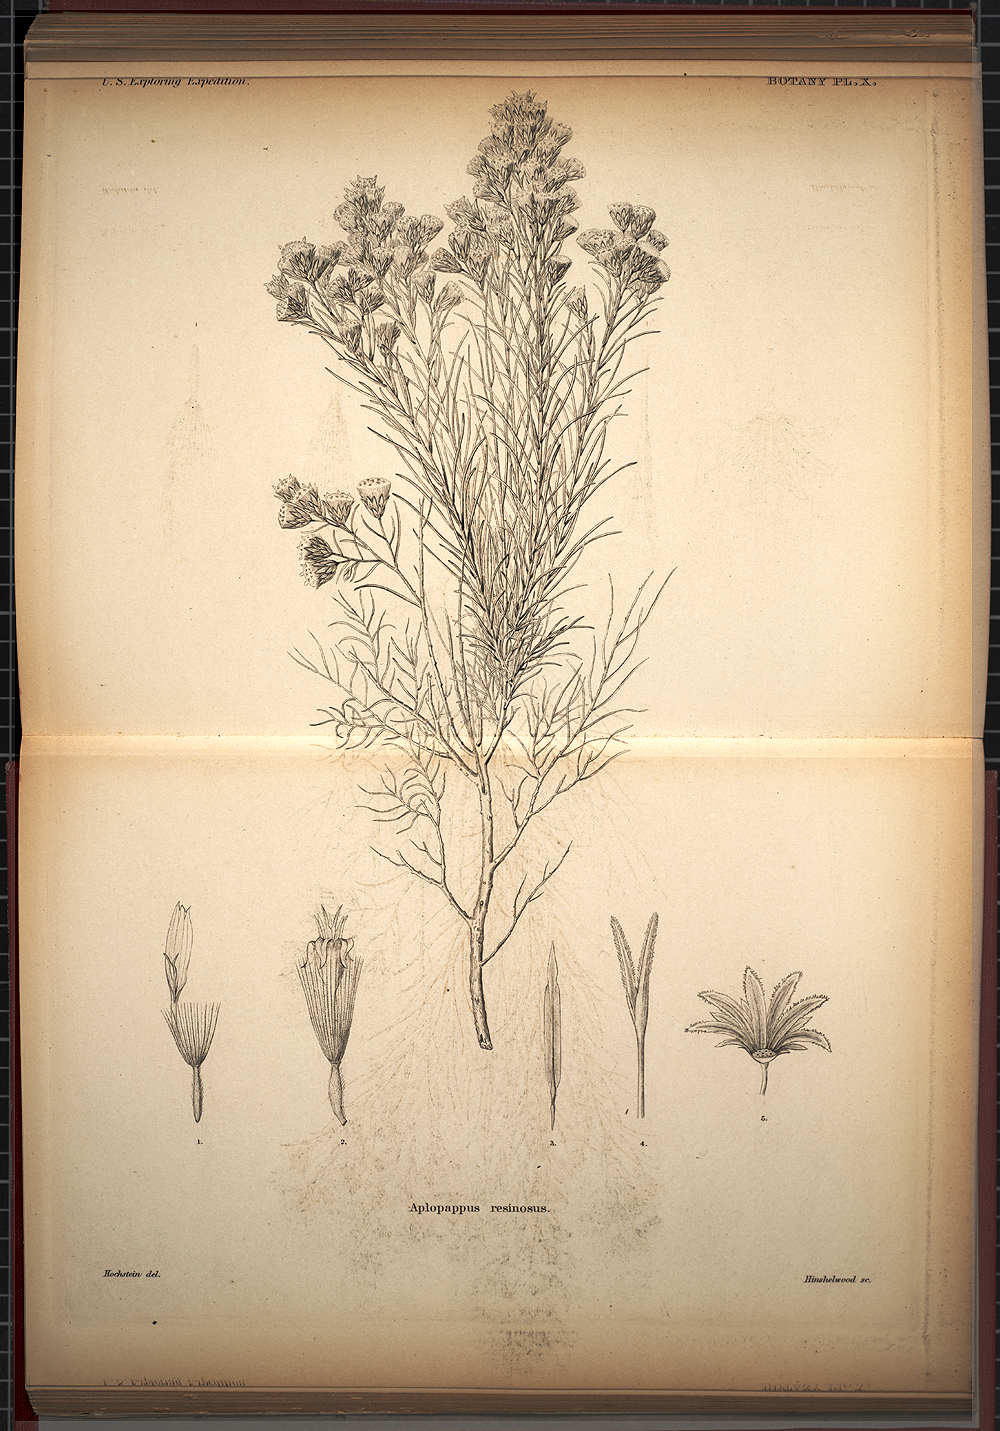 Botany, Plate X,  Image number:SIL19-28-043